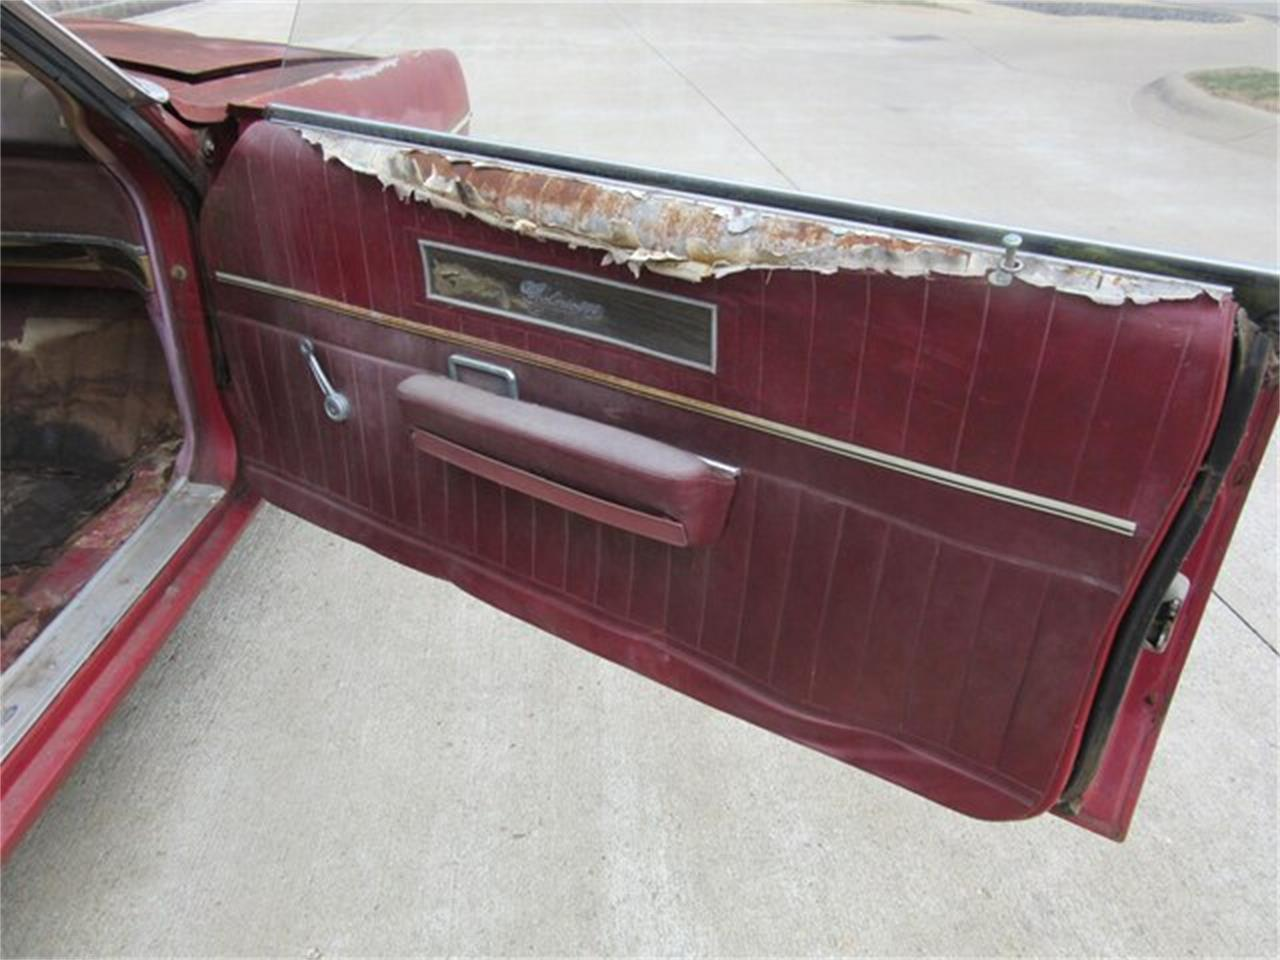 1969 Ford Galaxie 500 (CC-1295816) for sale in Greenwood, Indiana